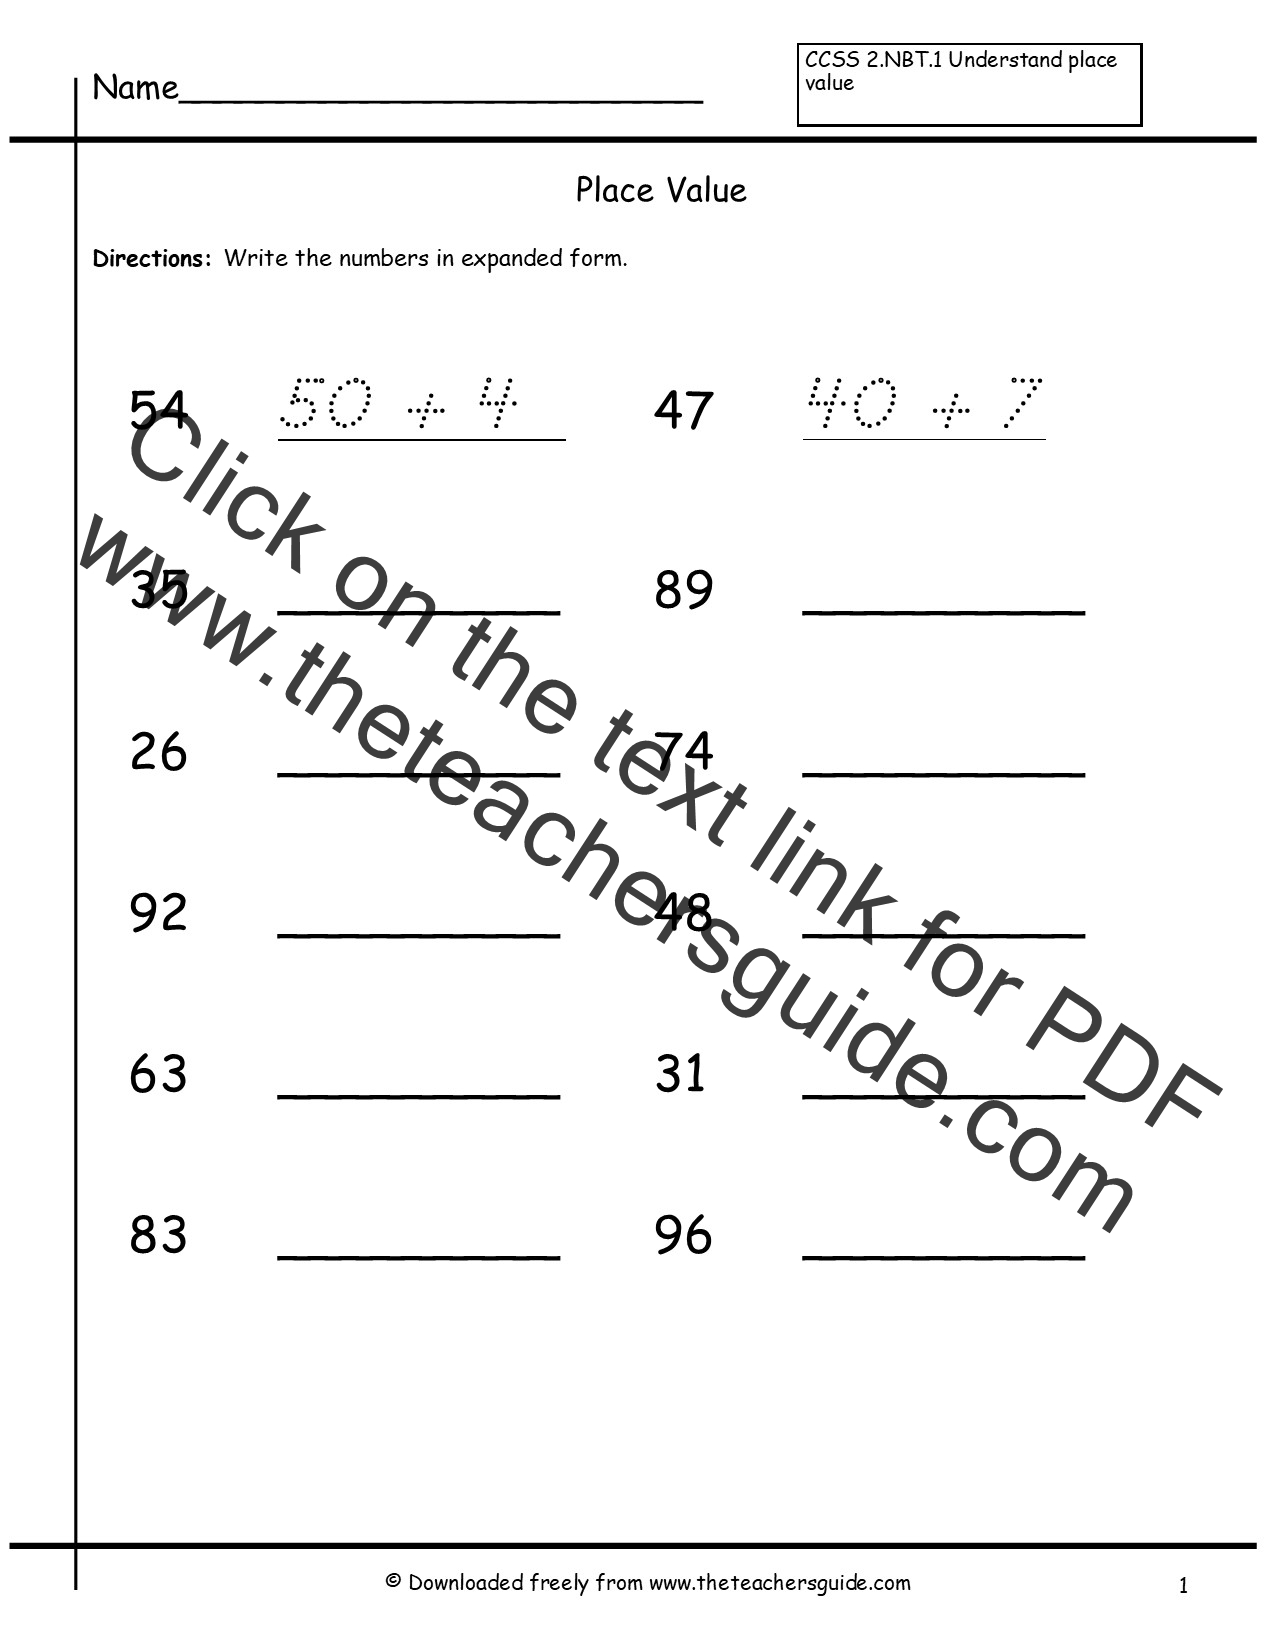 7 Digit Place Value Worksheet